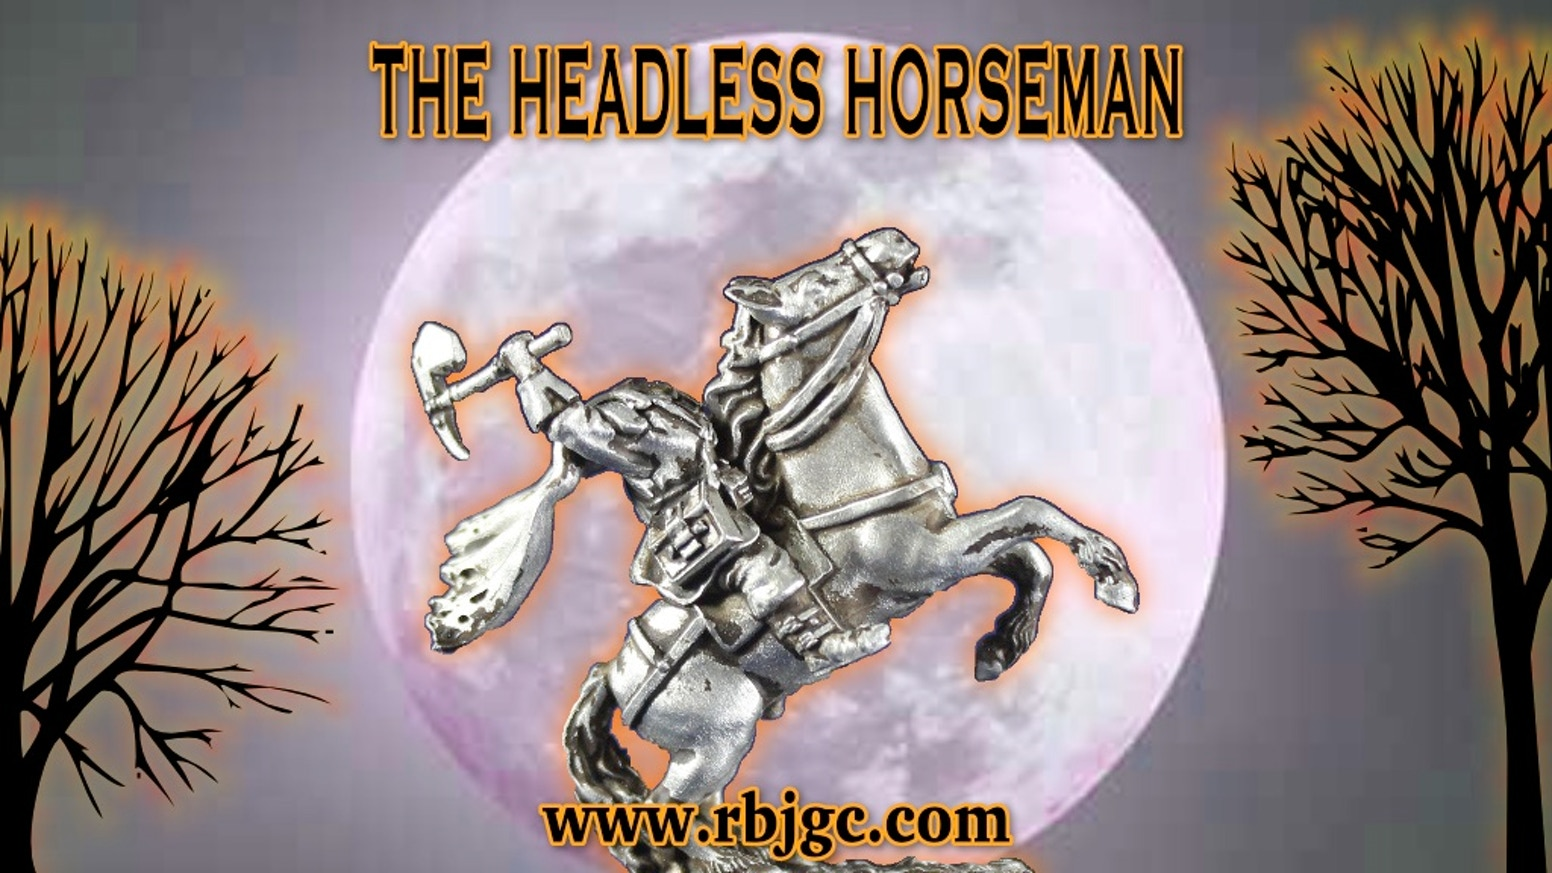 THE HEADLESS HORSEMAN by RBJ Game Company » Updates